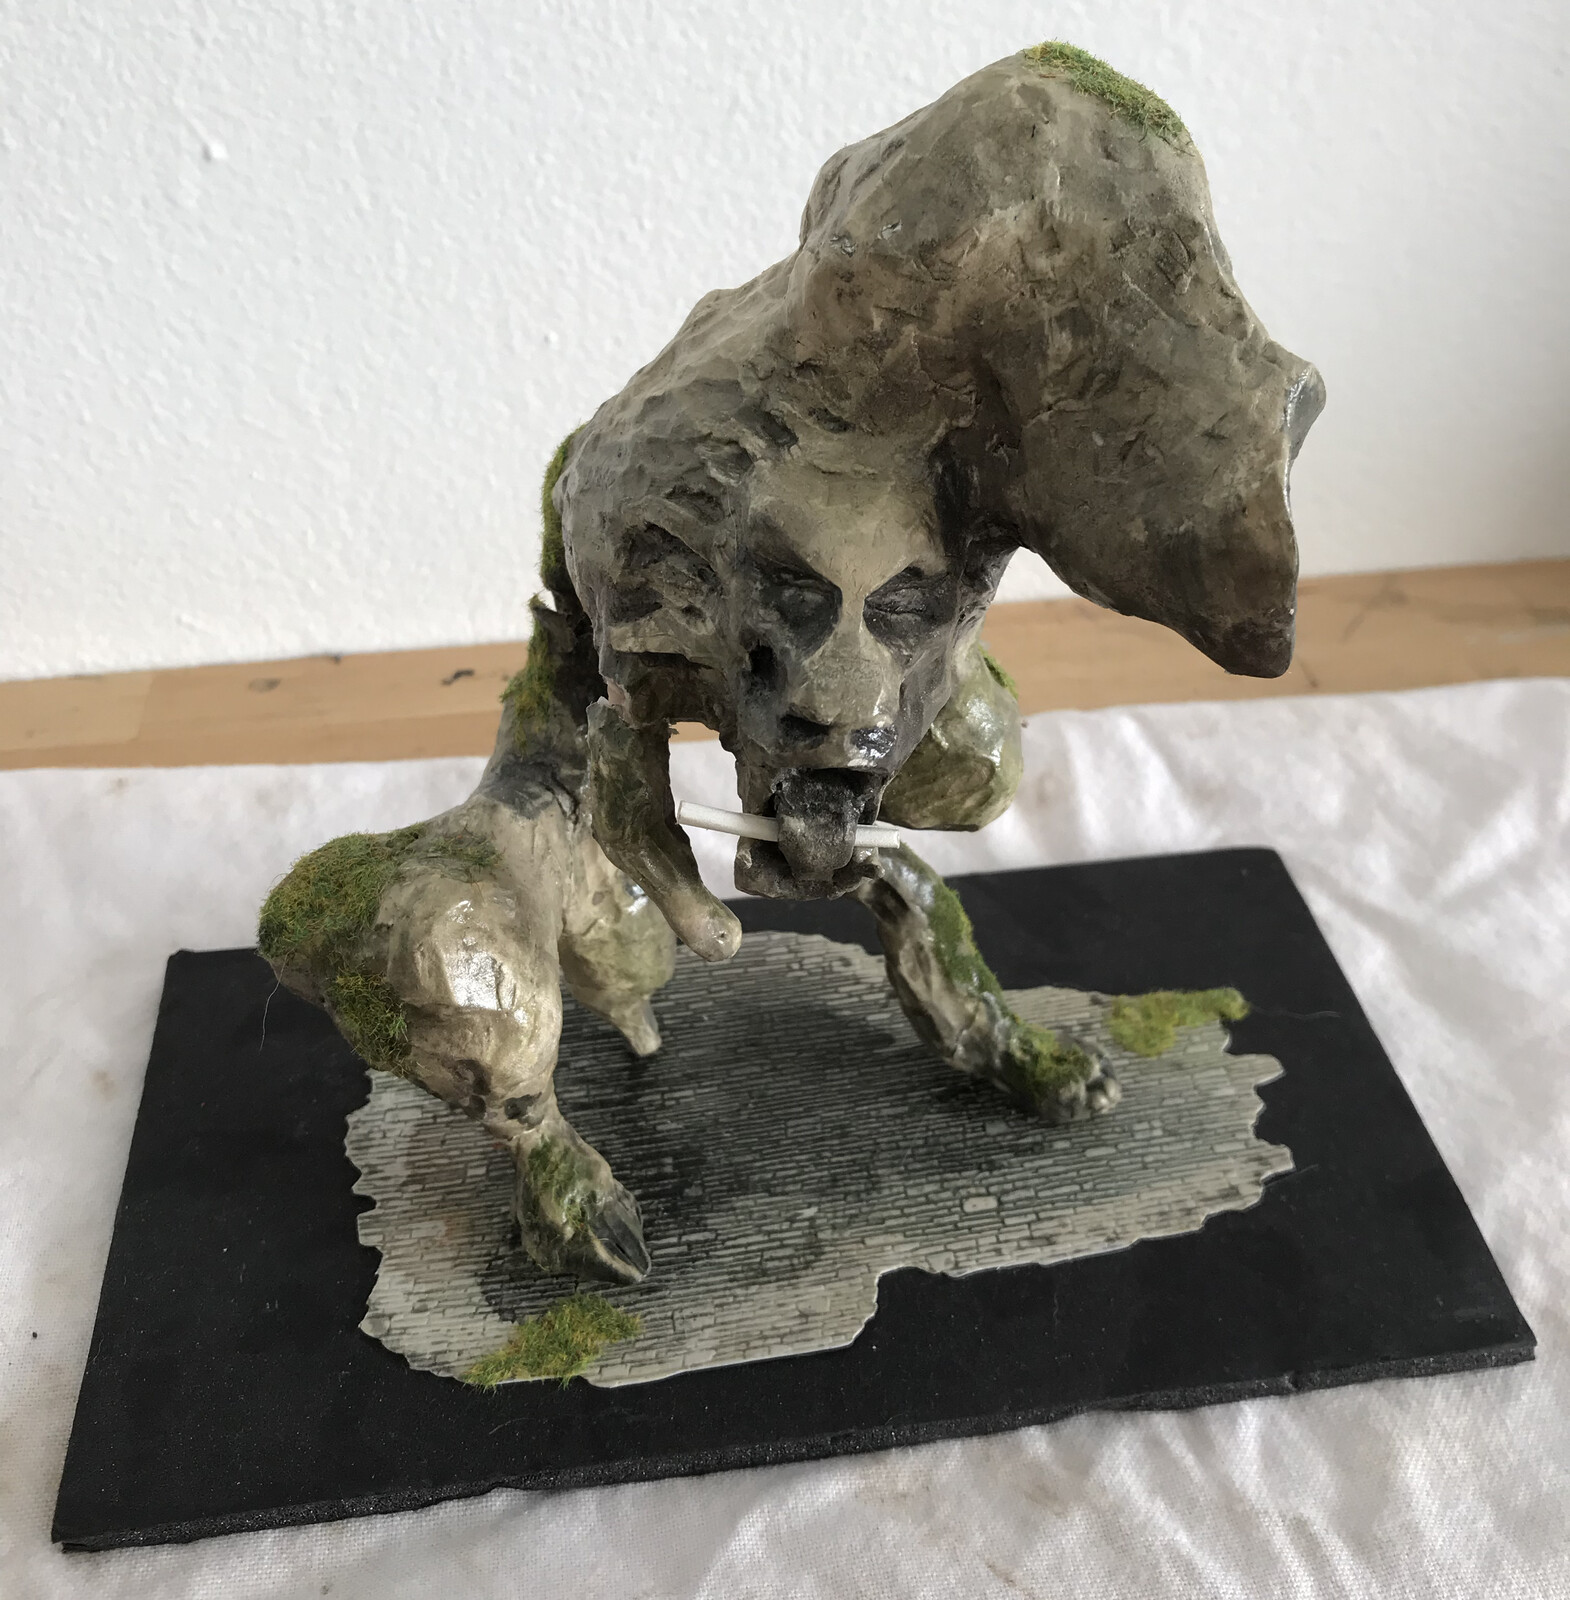 Sculpture: Golem